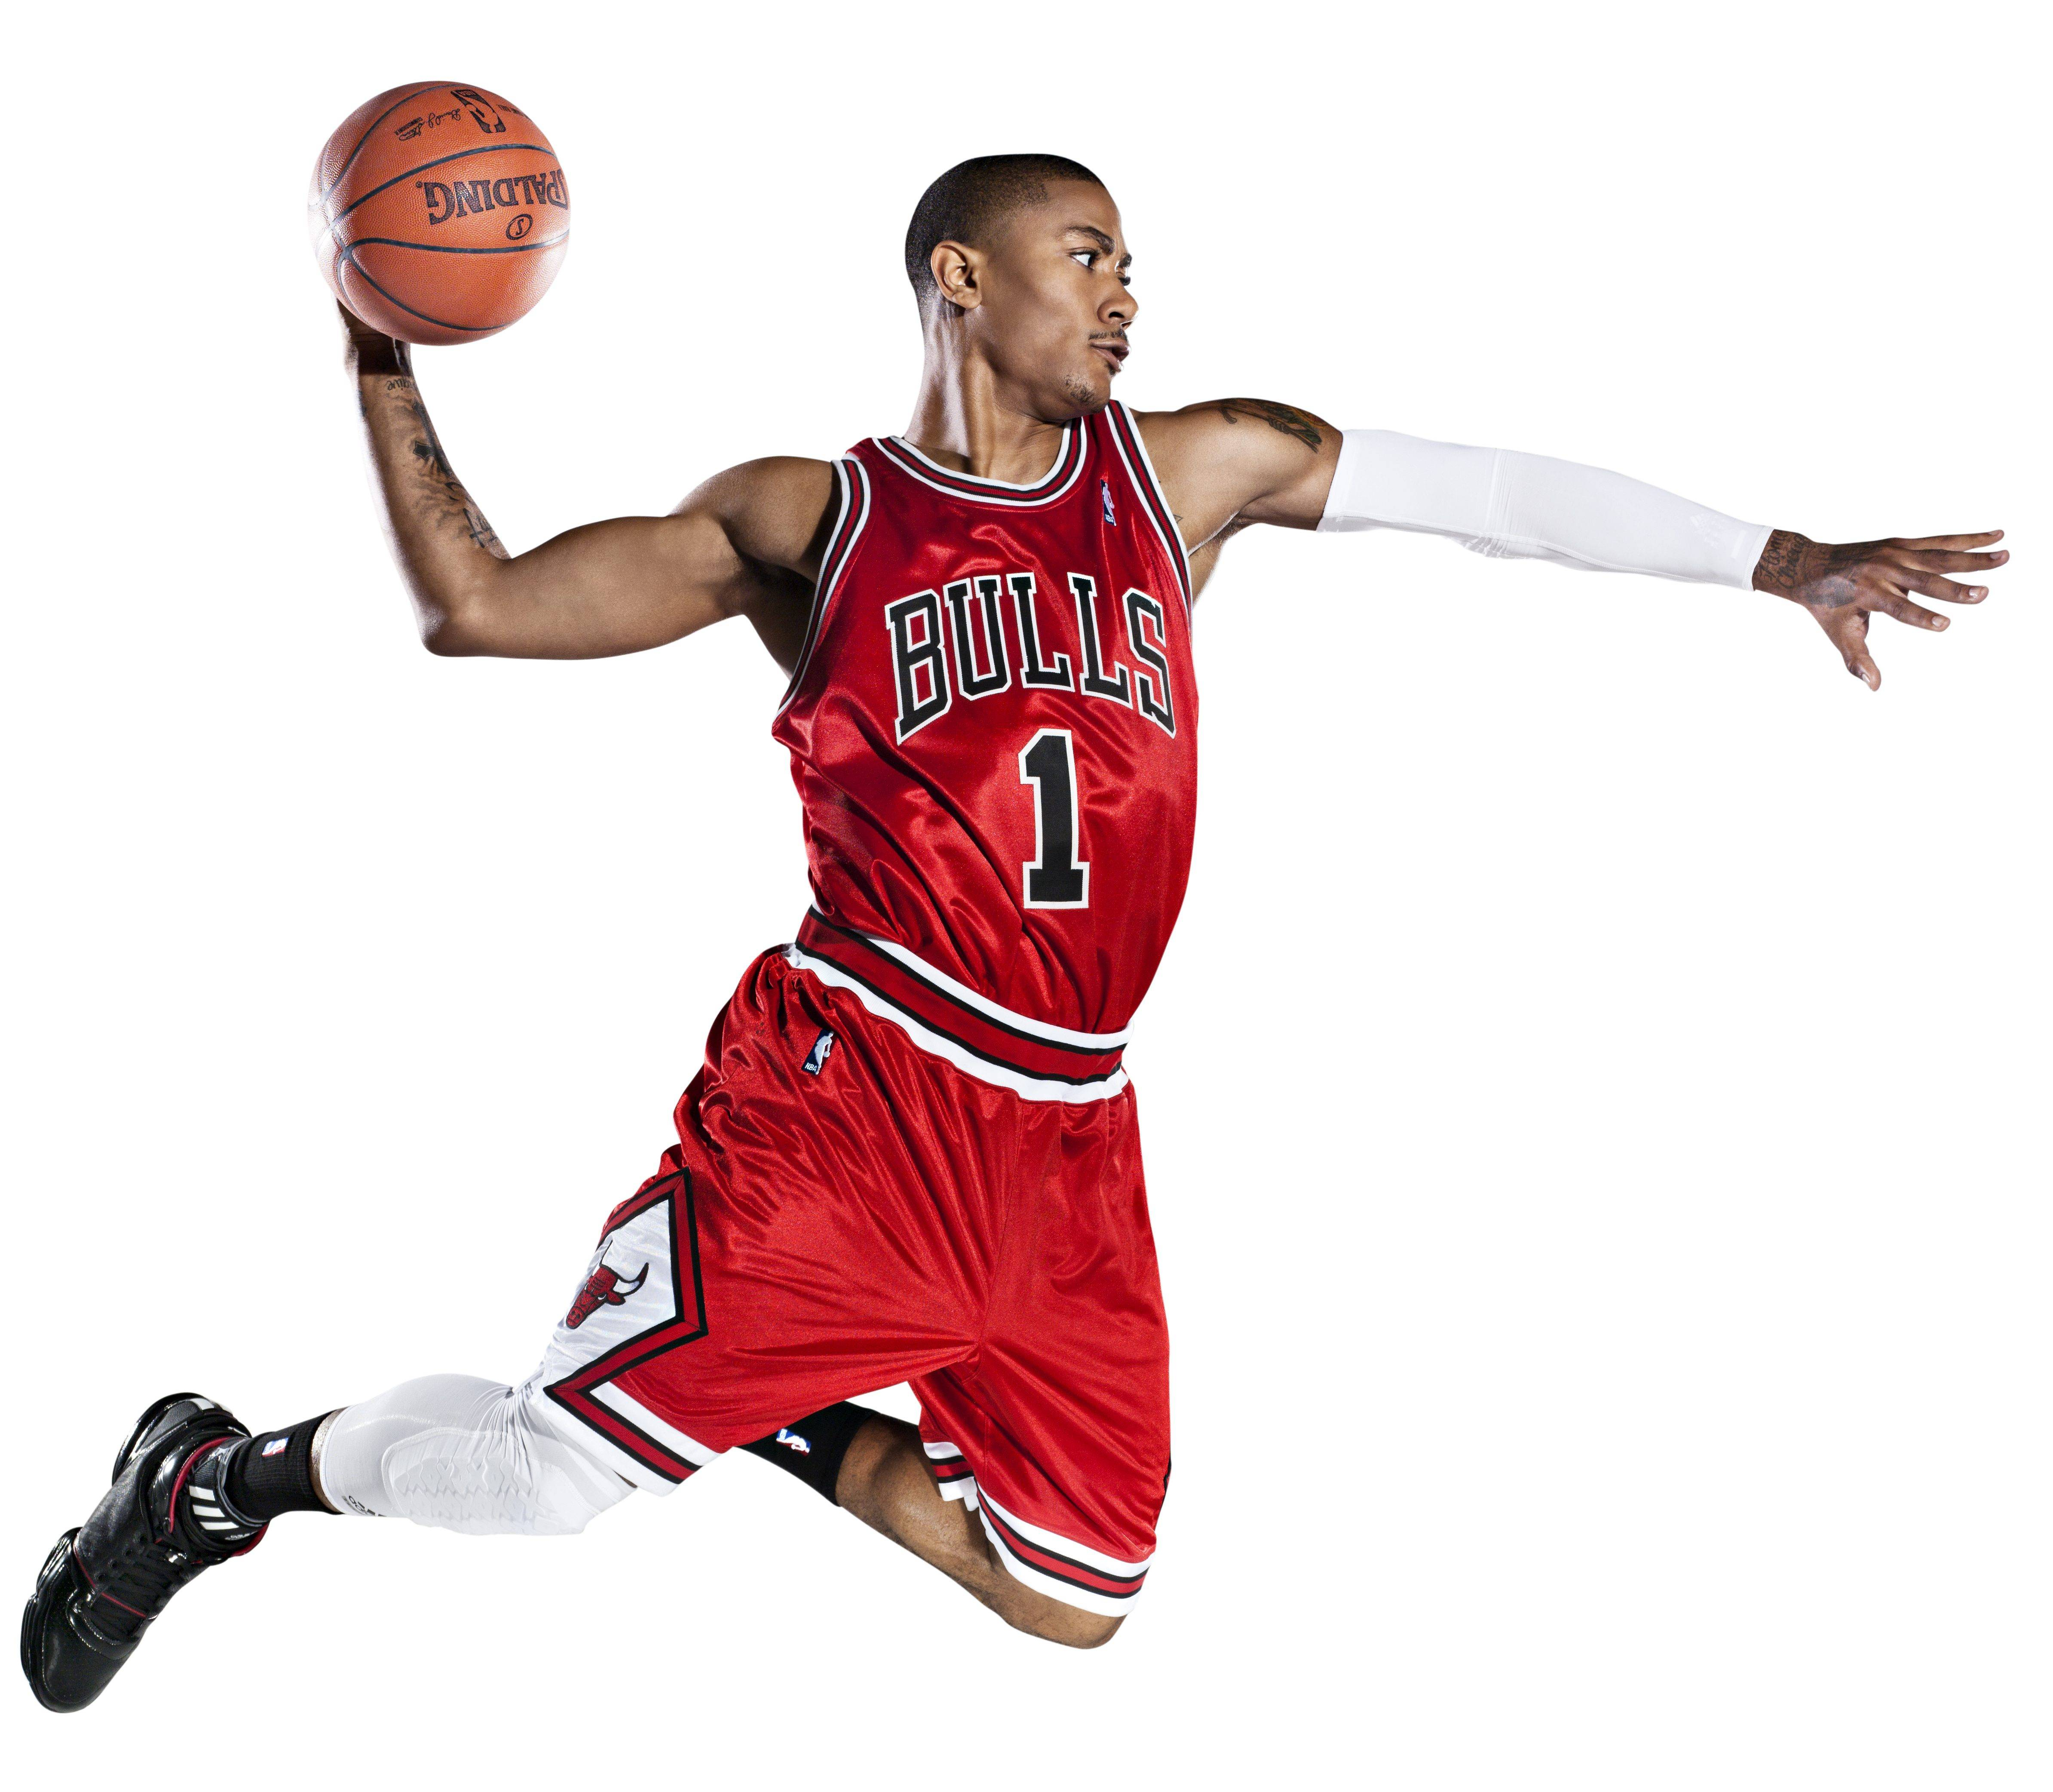 Knight Basketball Player Wallpaper: Derrick Rose Dunk Wallpapers